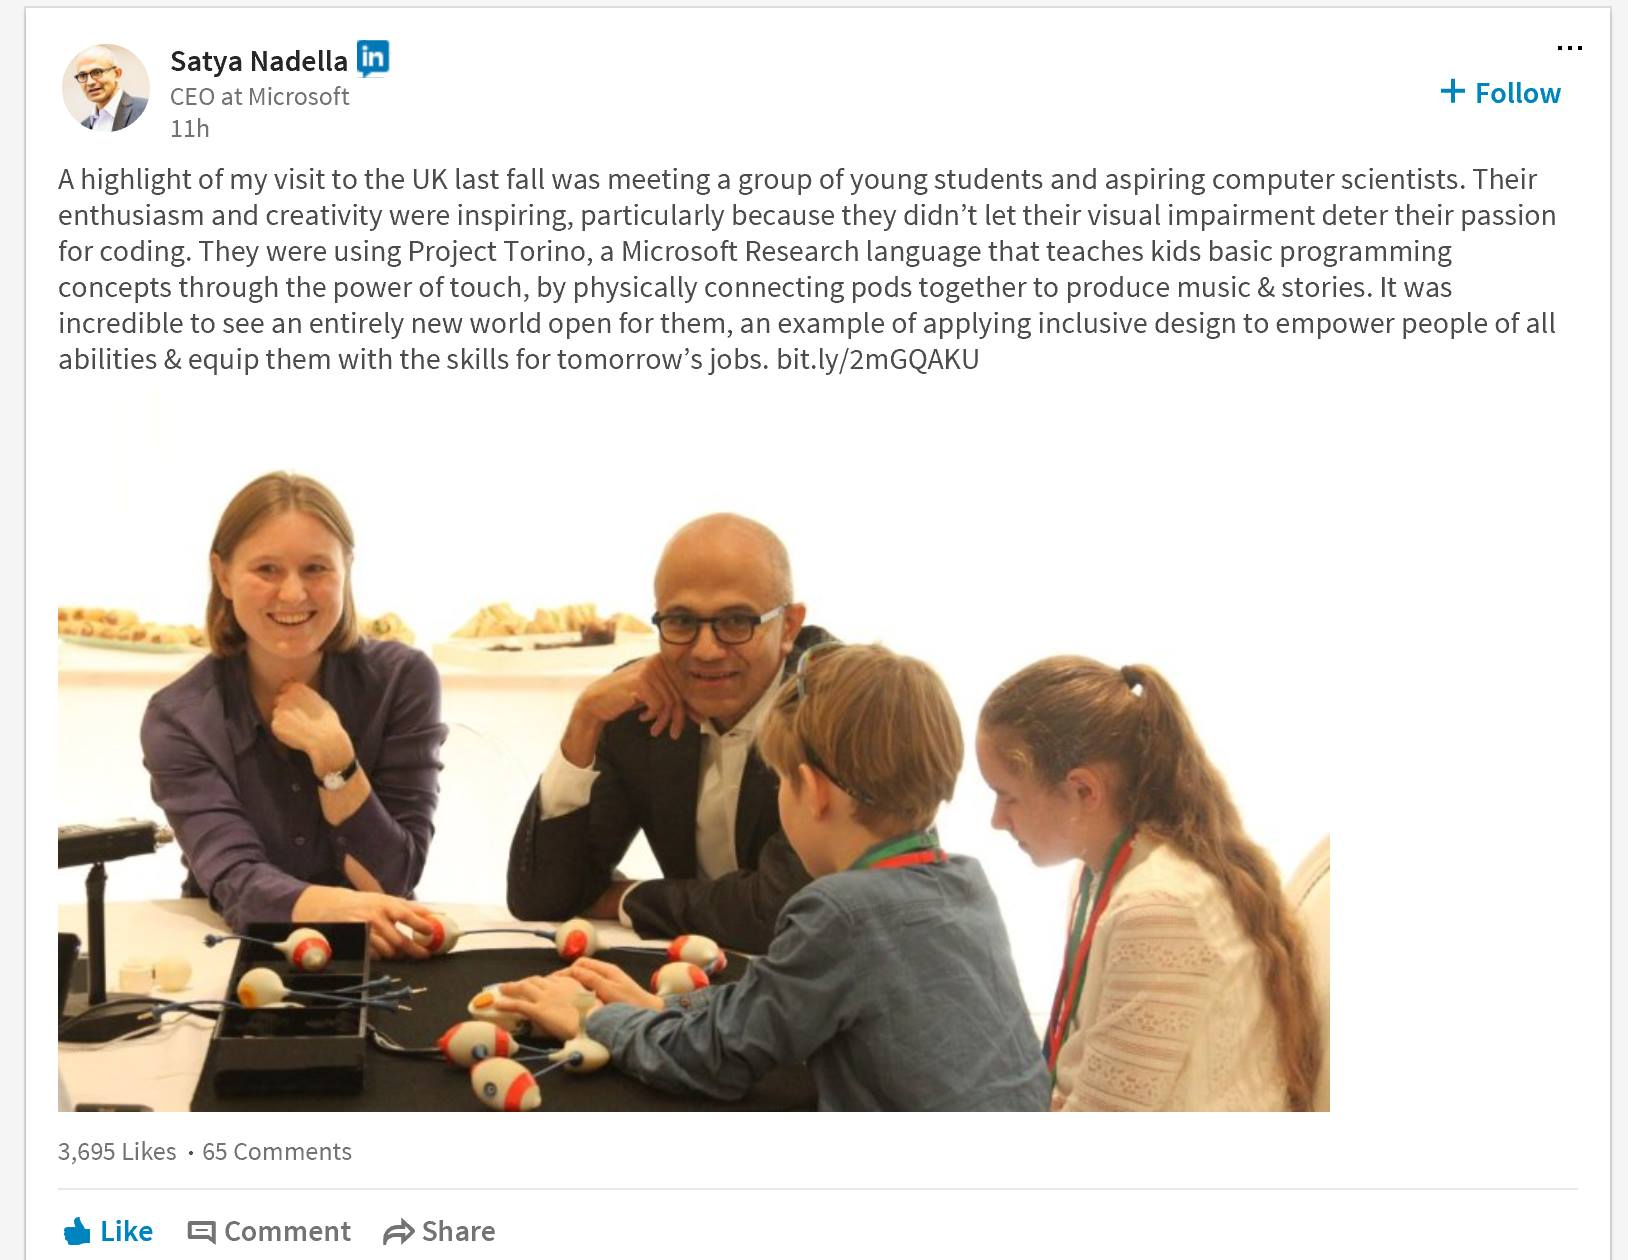 Image of Satya Nadella learning about Project Torino